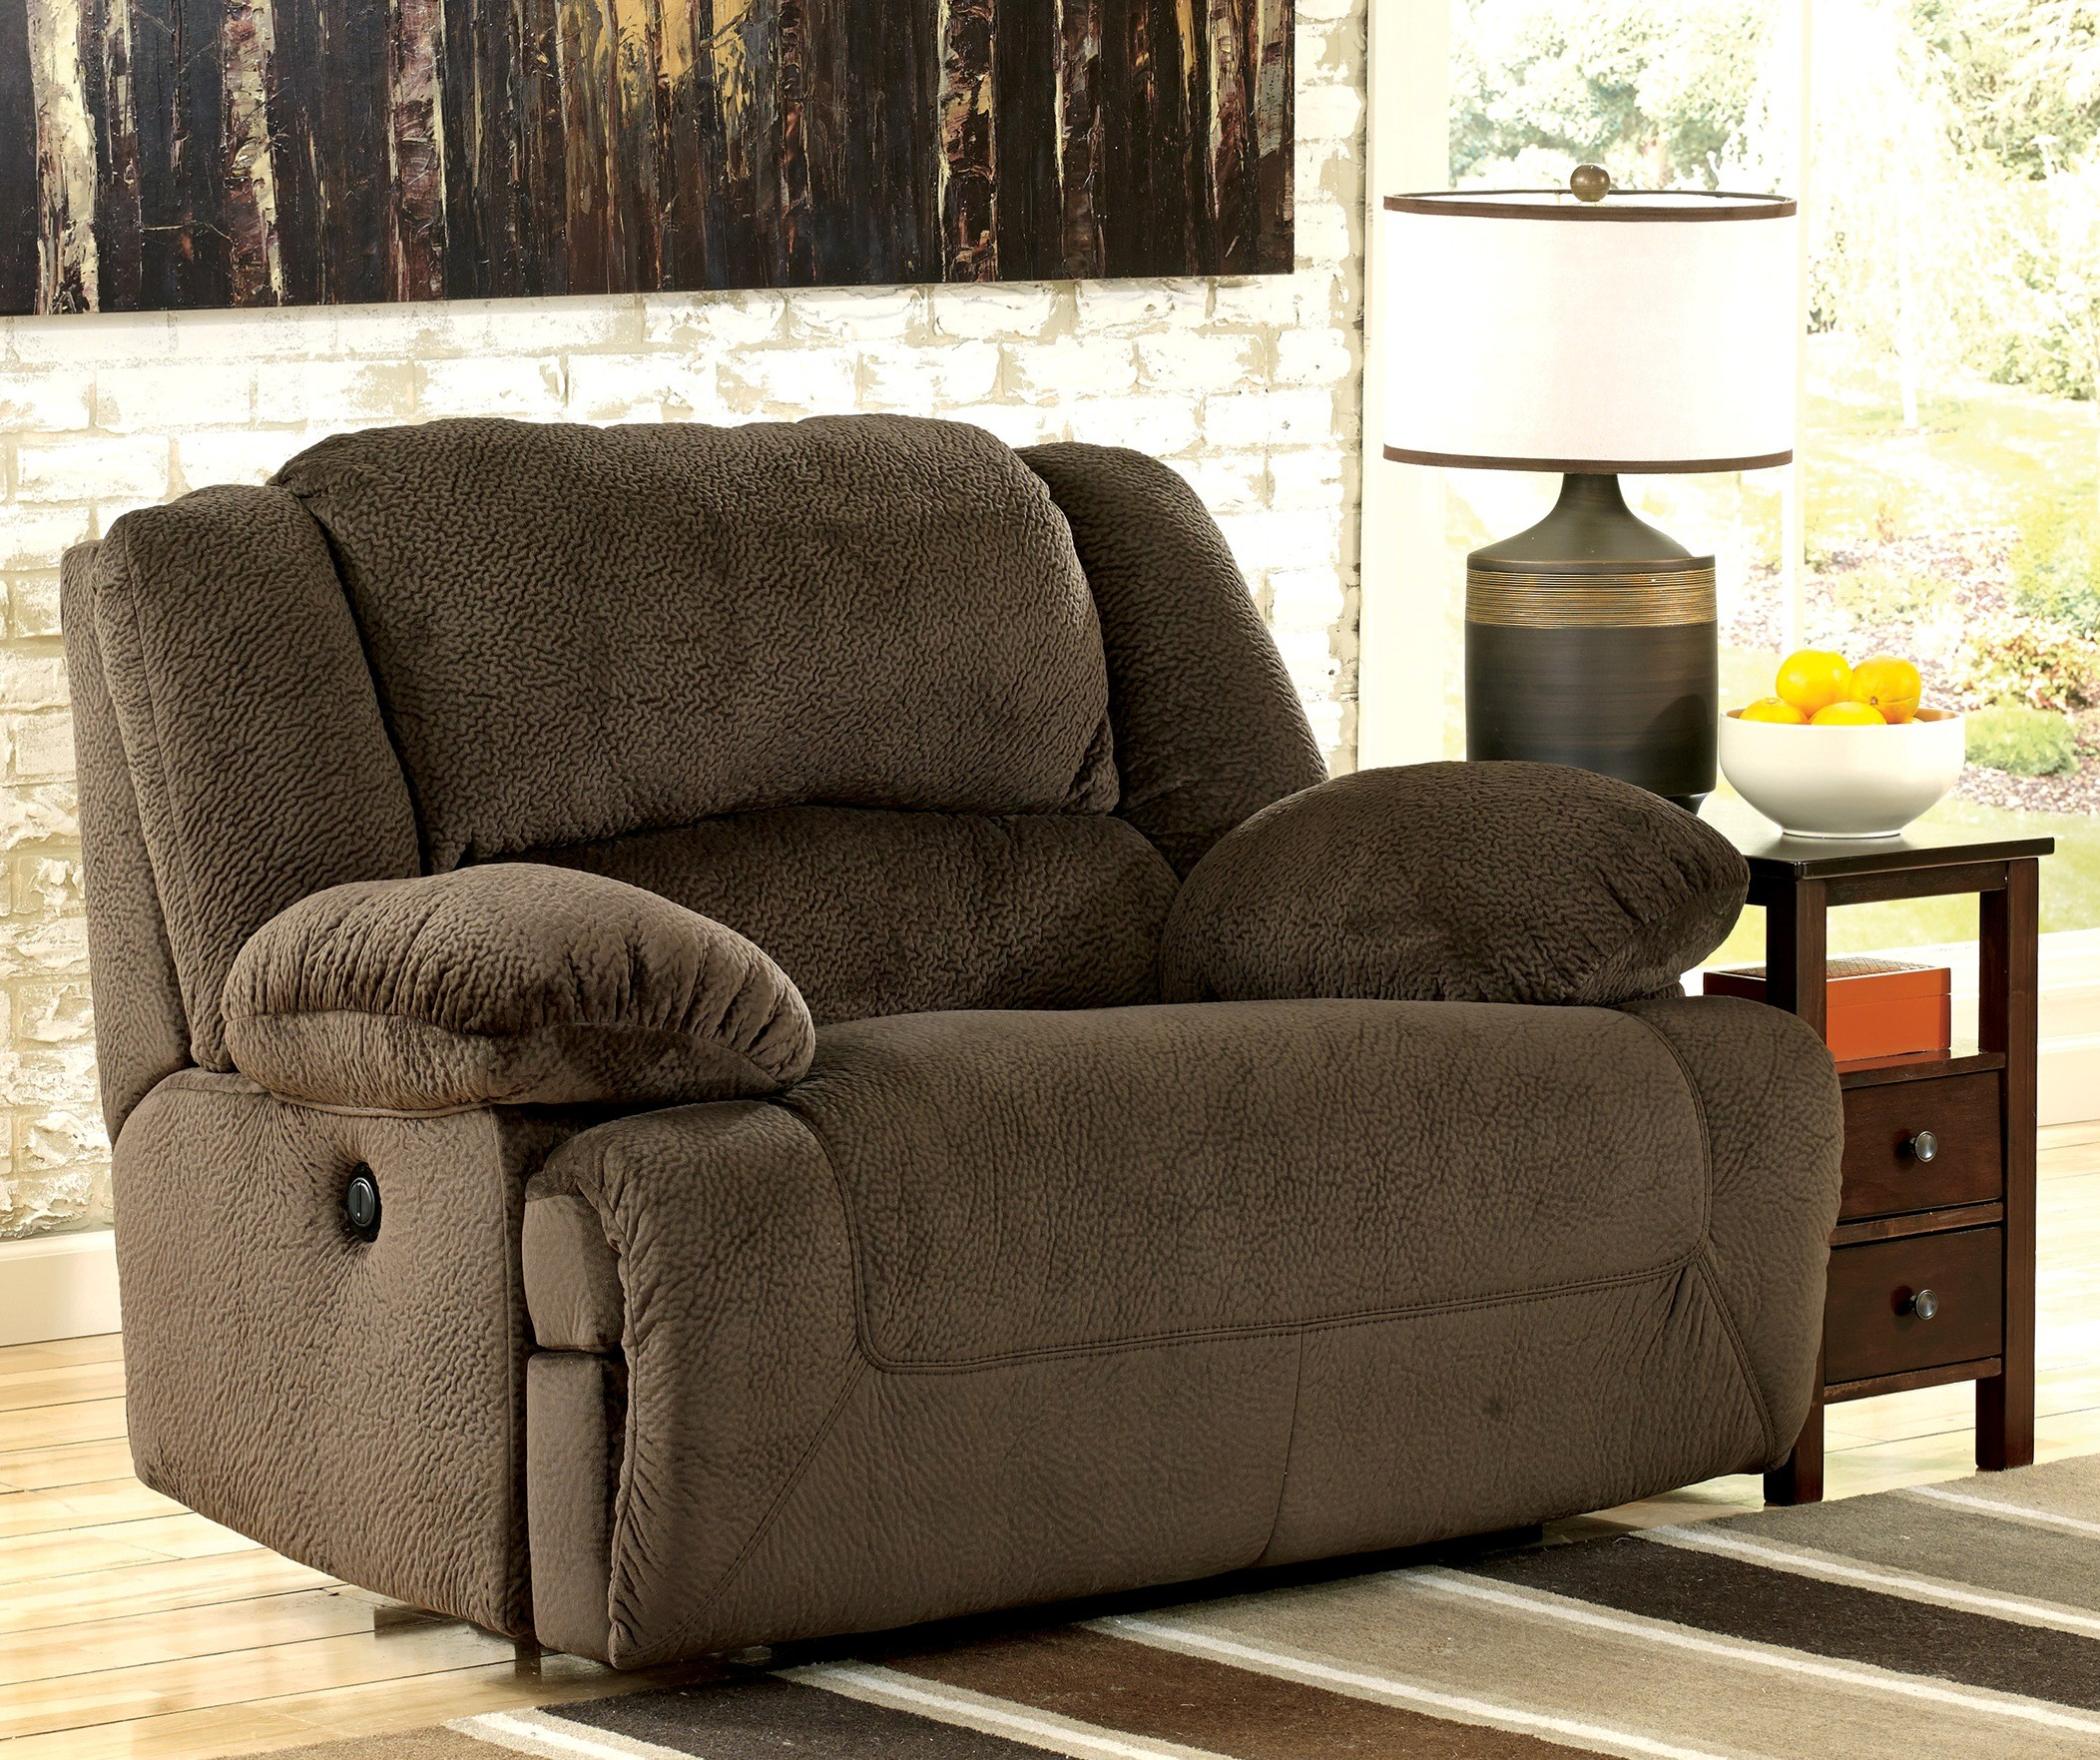 Chair and a half recliner ashley furniture - Toletta Chocolate Living Room Set From Ashley 5670181 86 Coleman Furniture